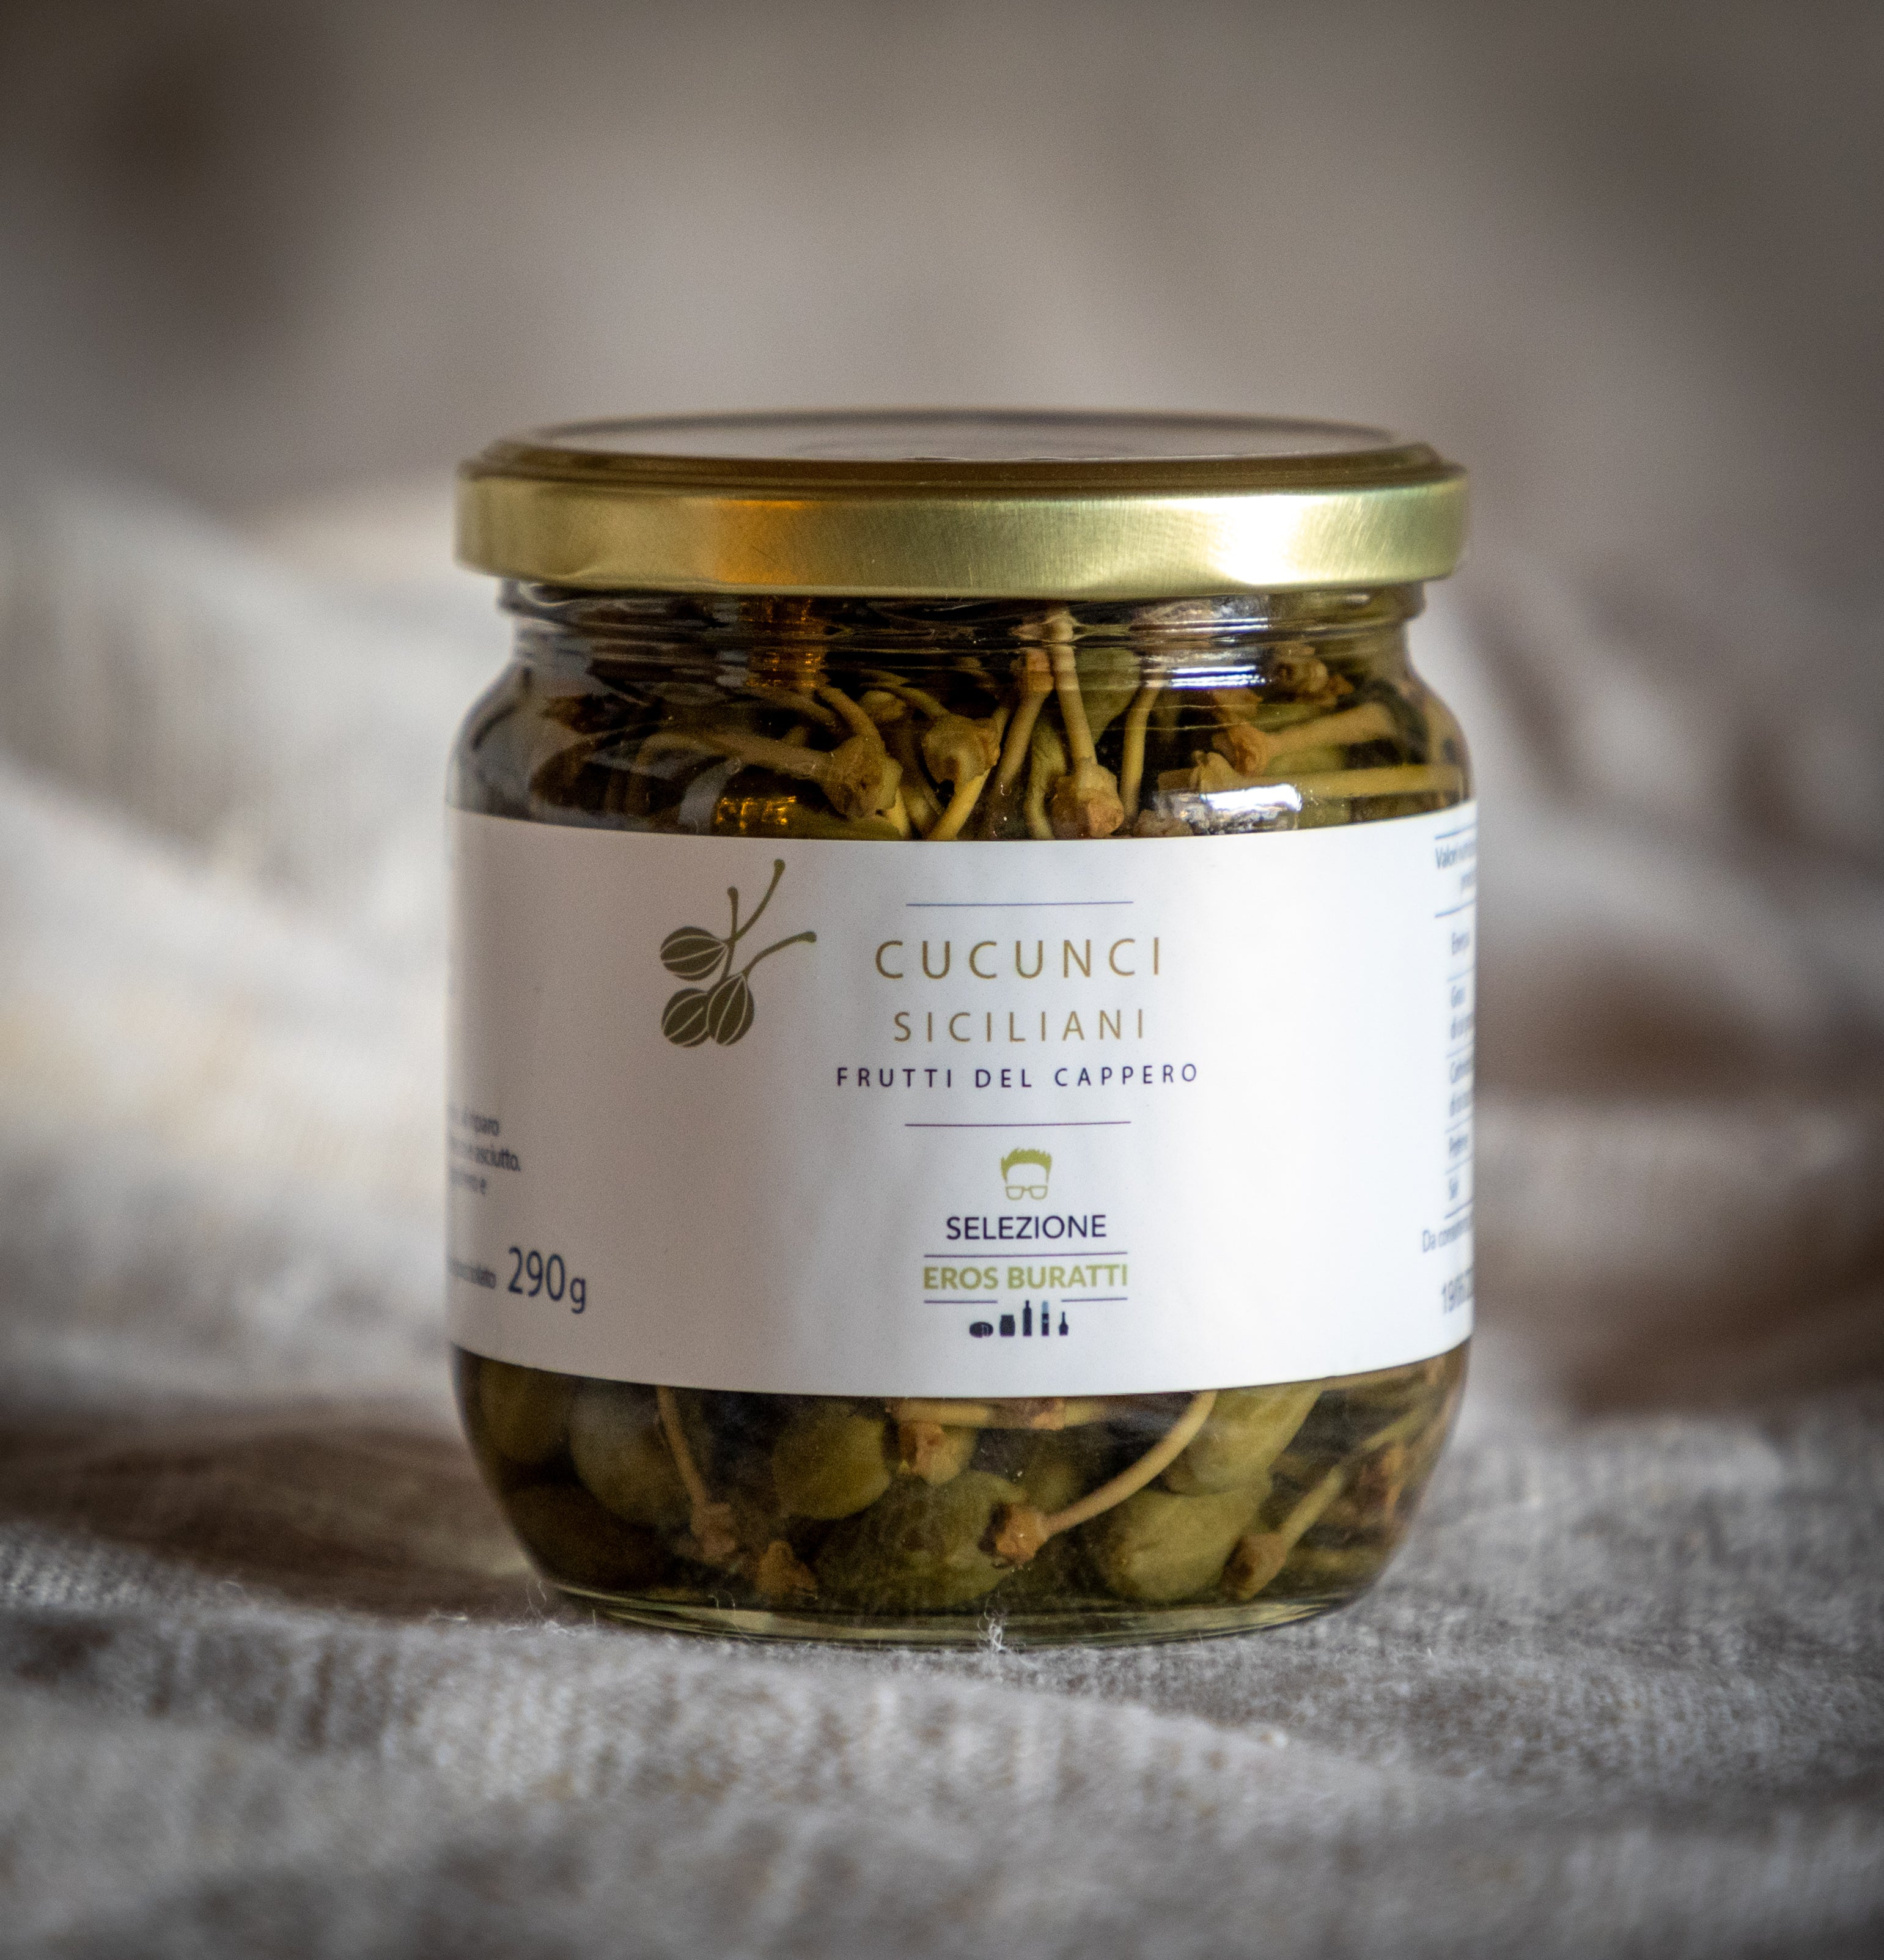 Cucunci Siciliani in aceto e sale 400GR